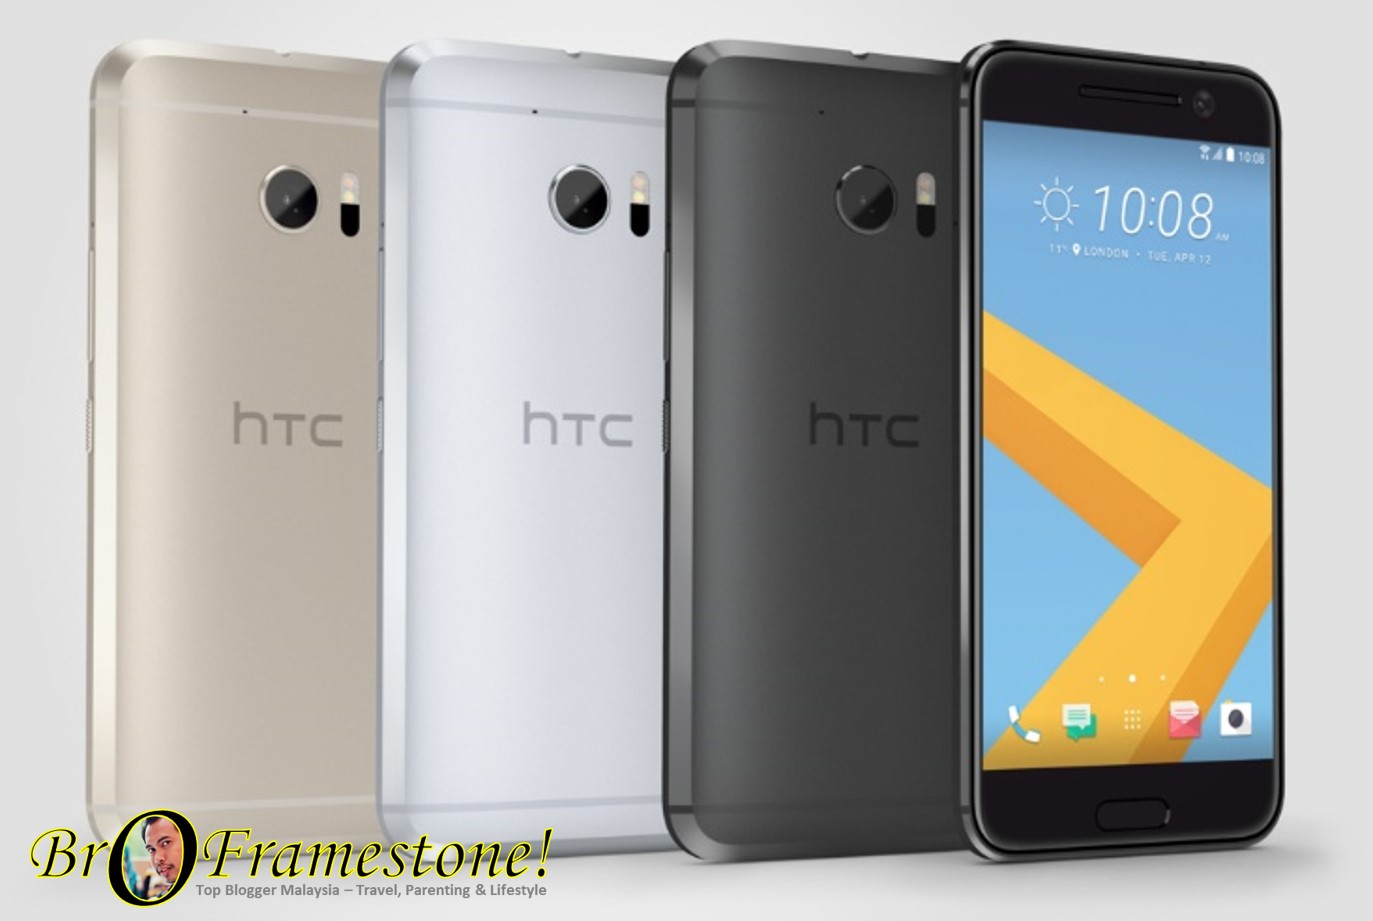 HTC Launch of its Latest Smartphone – HTC 10